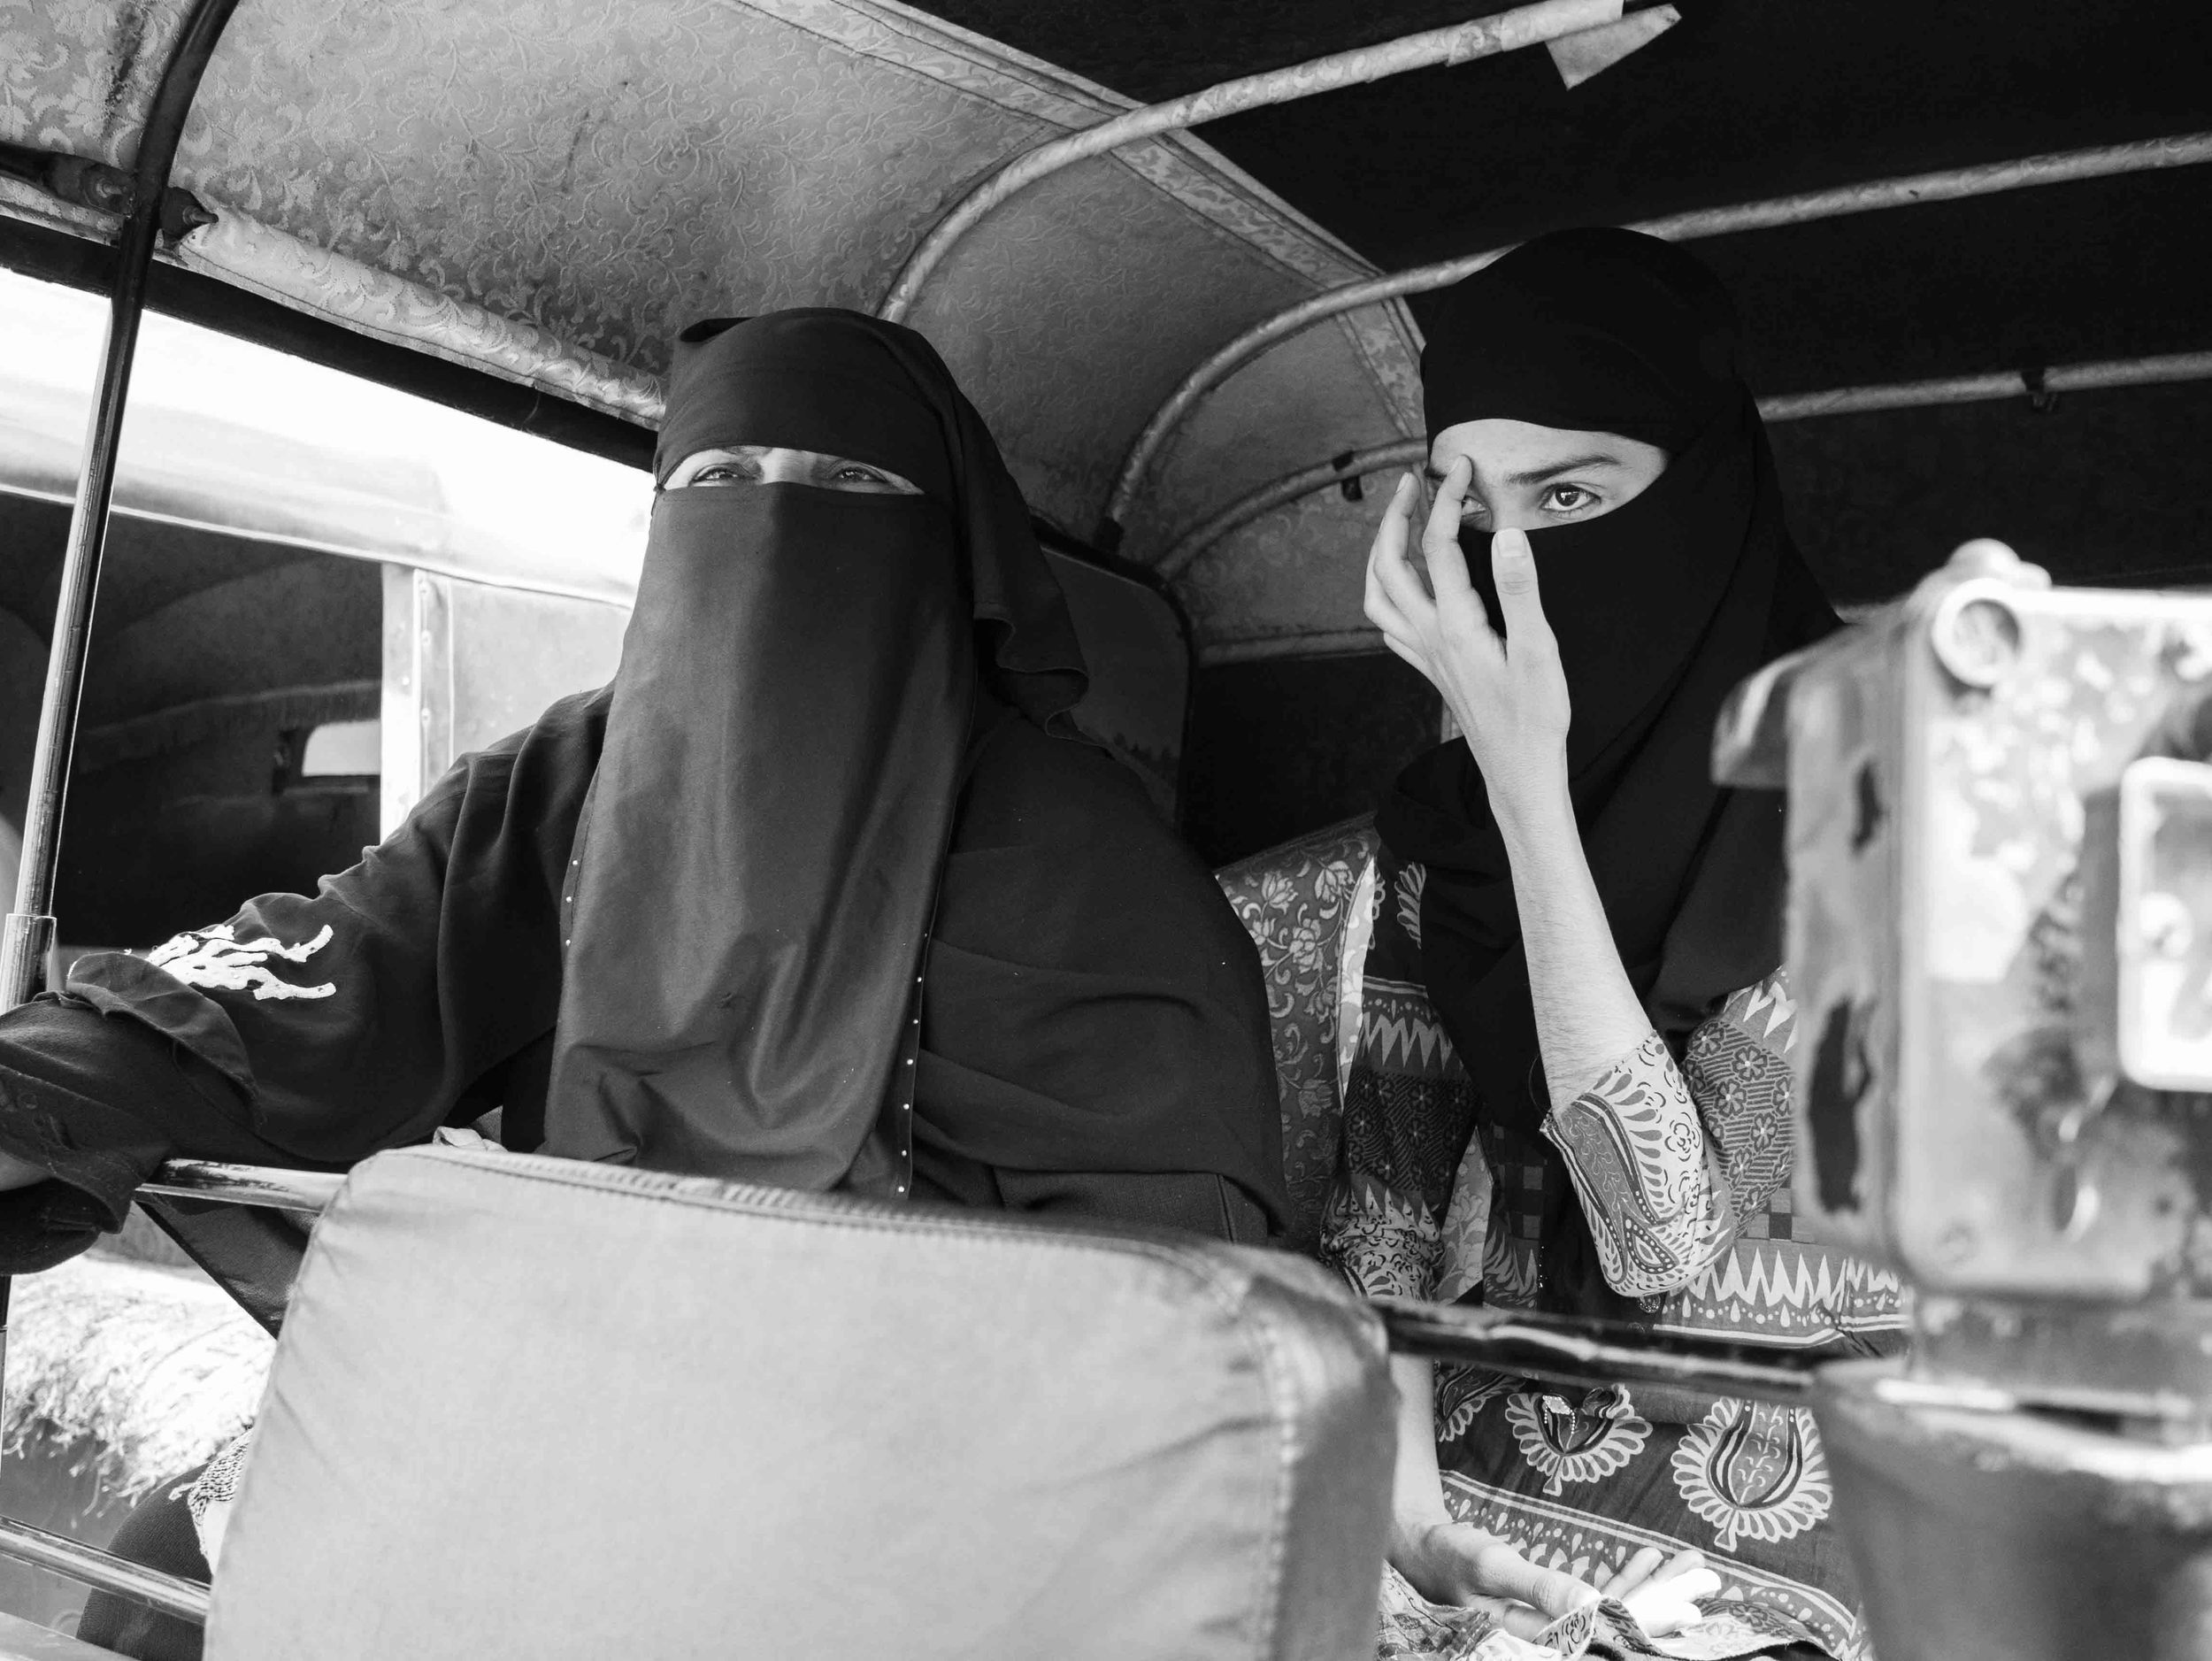 Two women passengers photographed while waiting in autorockshaw as part of the street photography series captured in Vadoadra, Gujarat, India by Gagan Sadana.